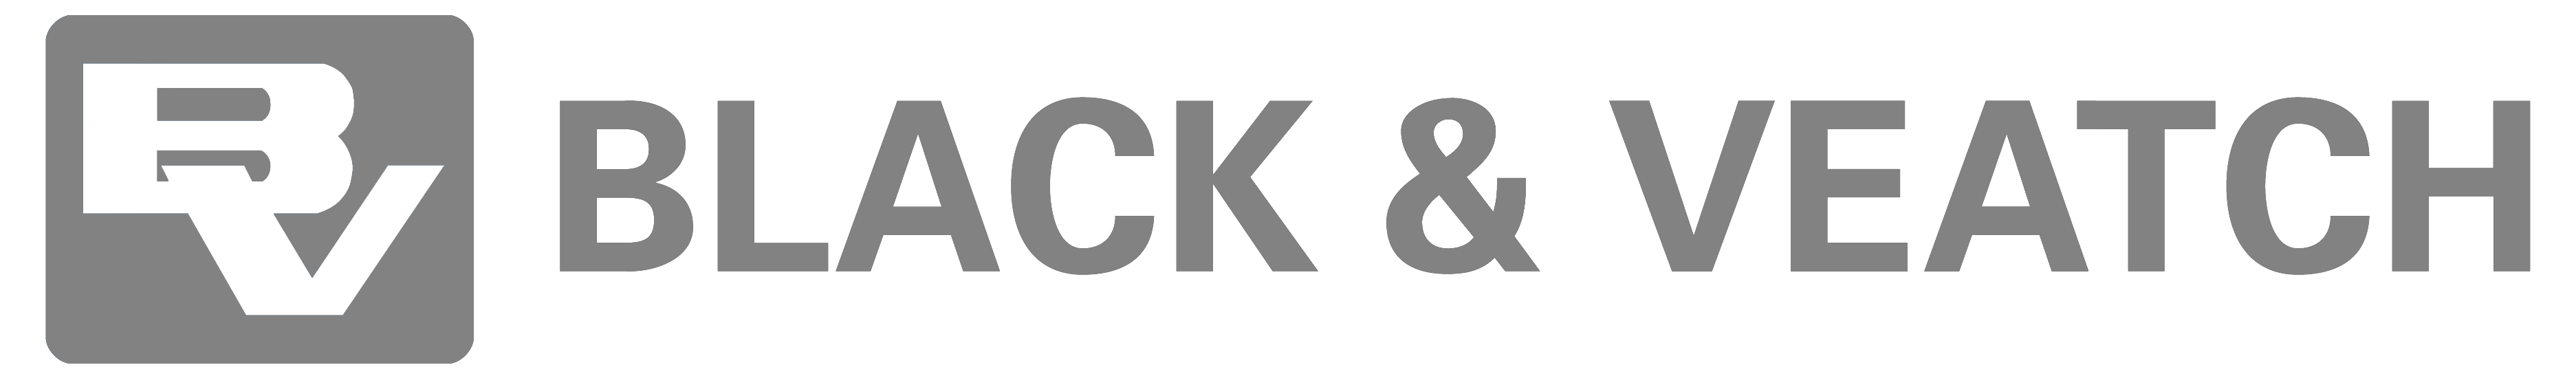 Black-and-Veatch-logo-gray